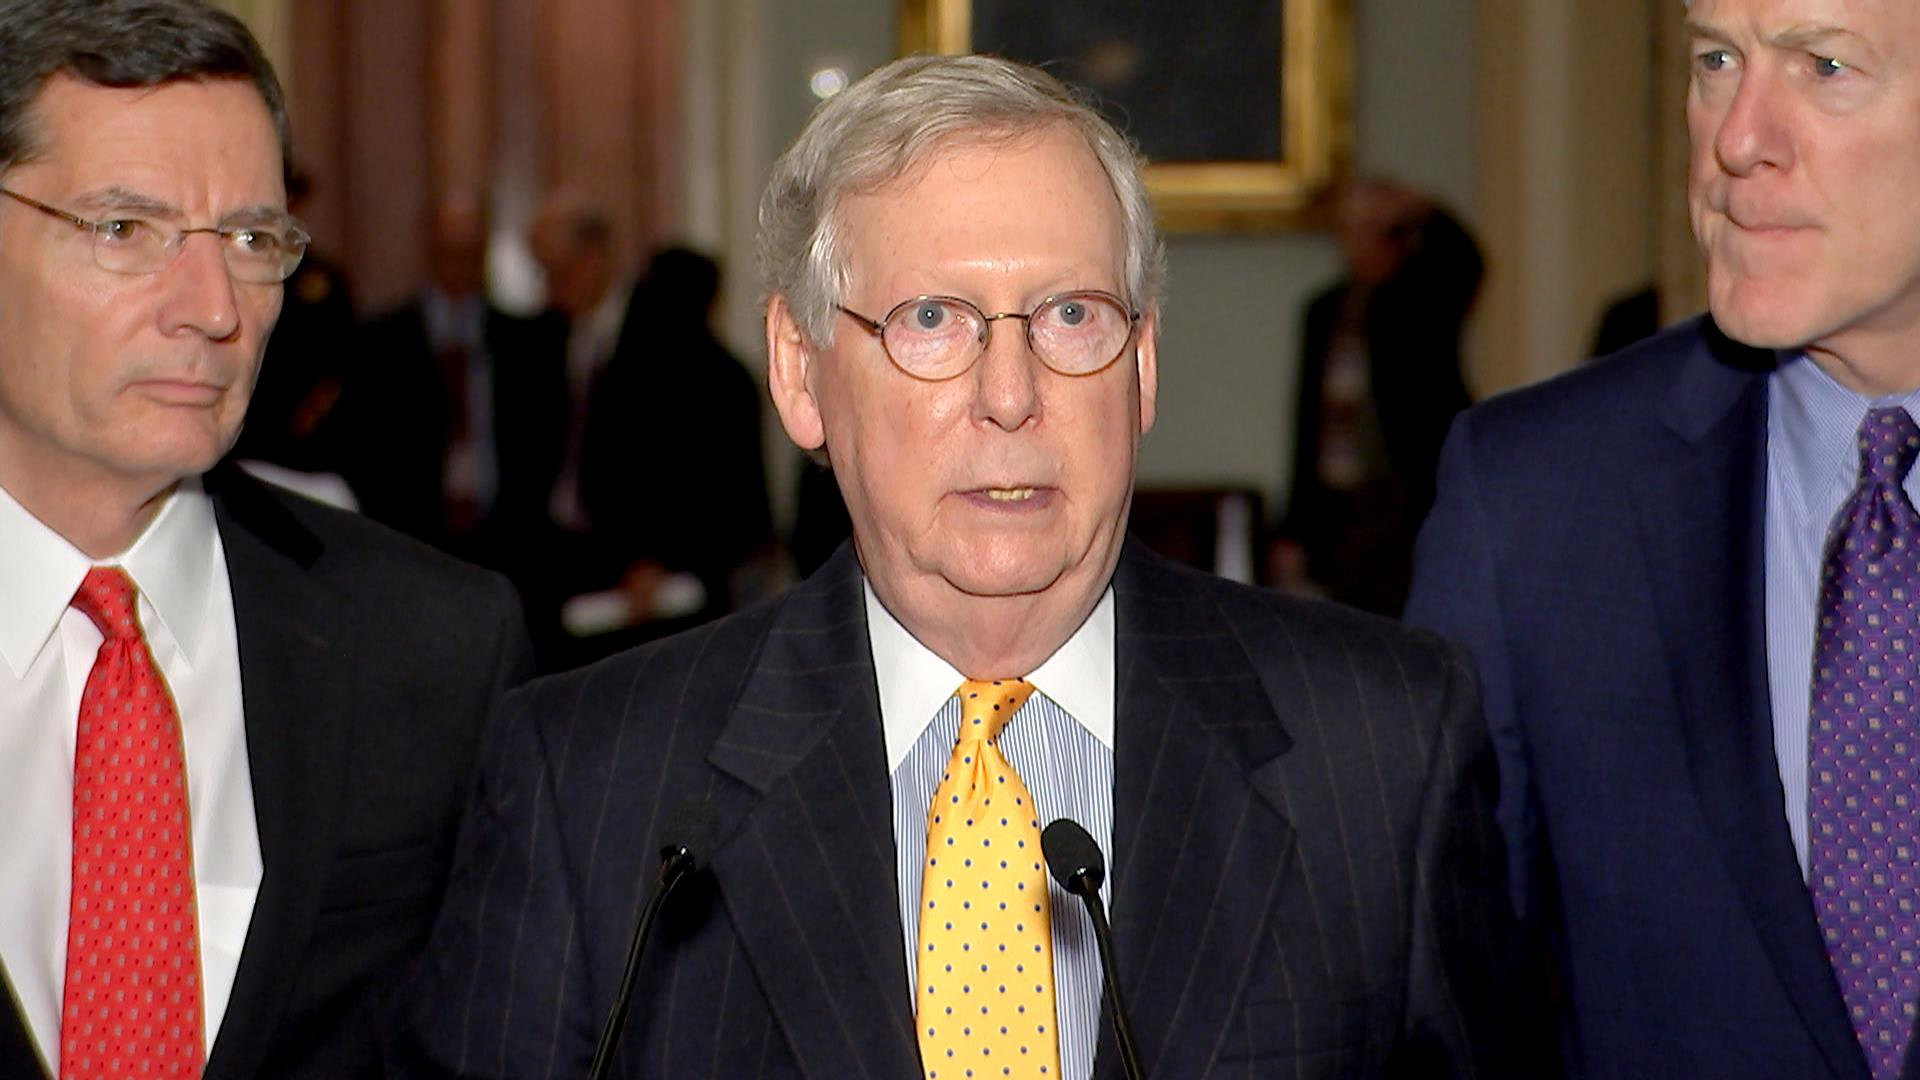 McConnell Advises Trump to Discourage Violence at Rallies